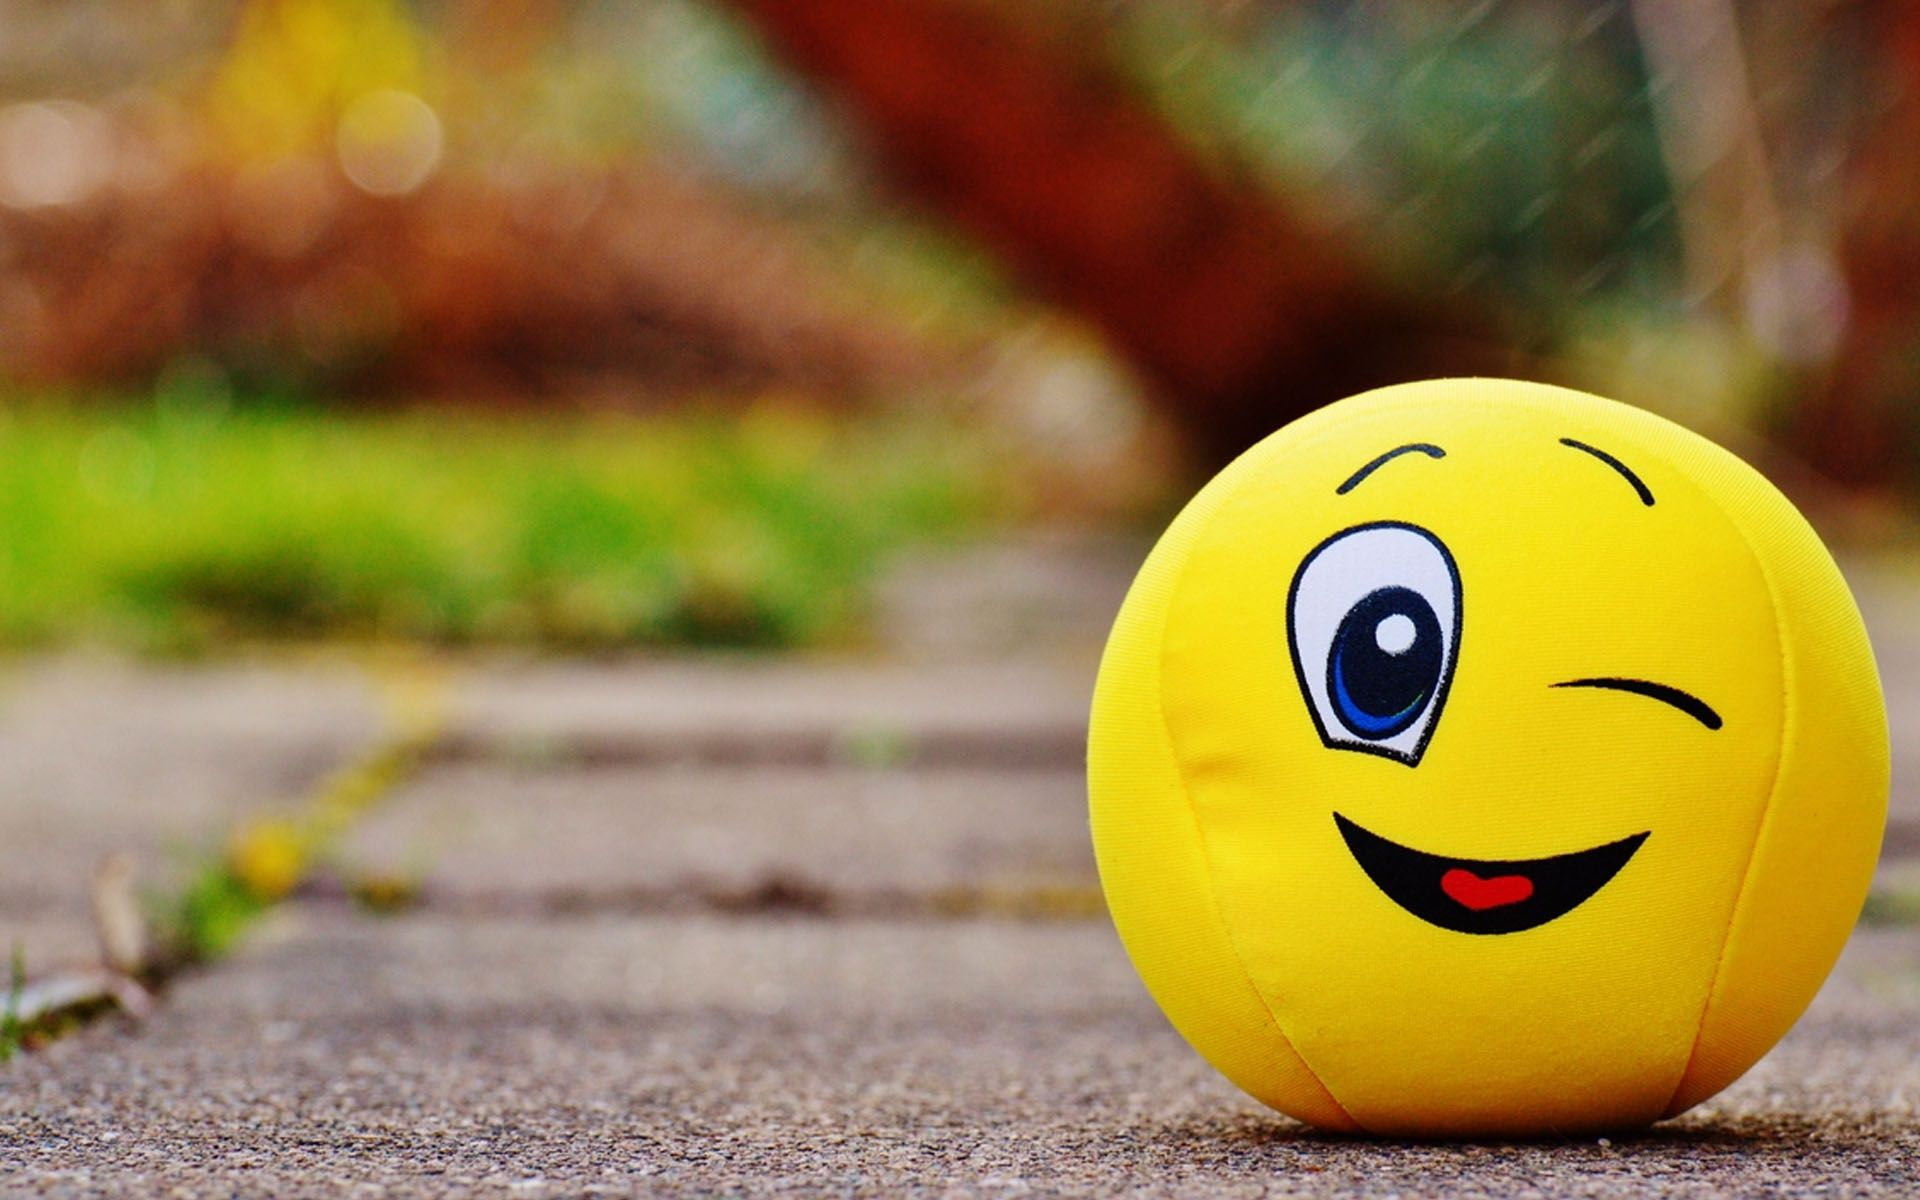 Smiley Face Hd Wallpaper Hd Cute Wallpapers Smiley Face Images Happy Wallpaper